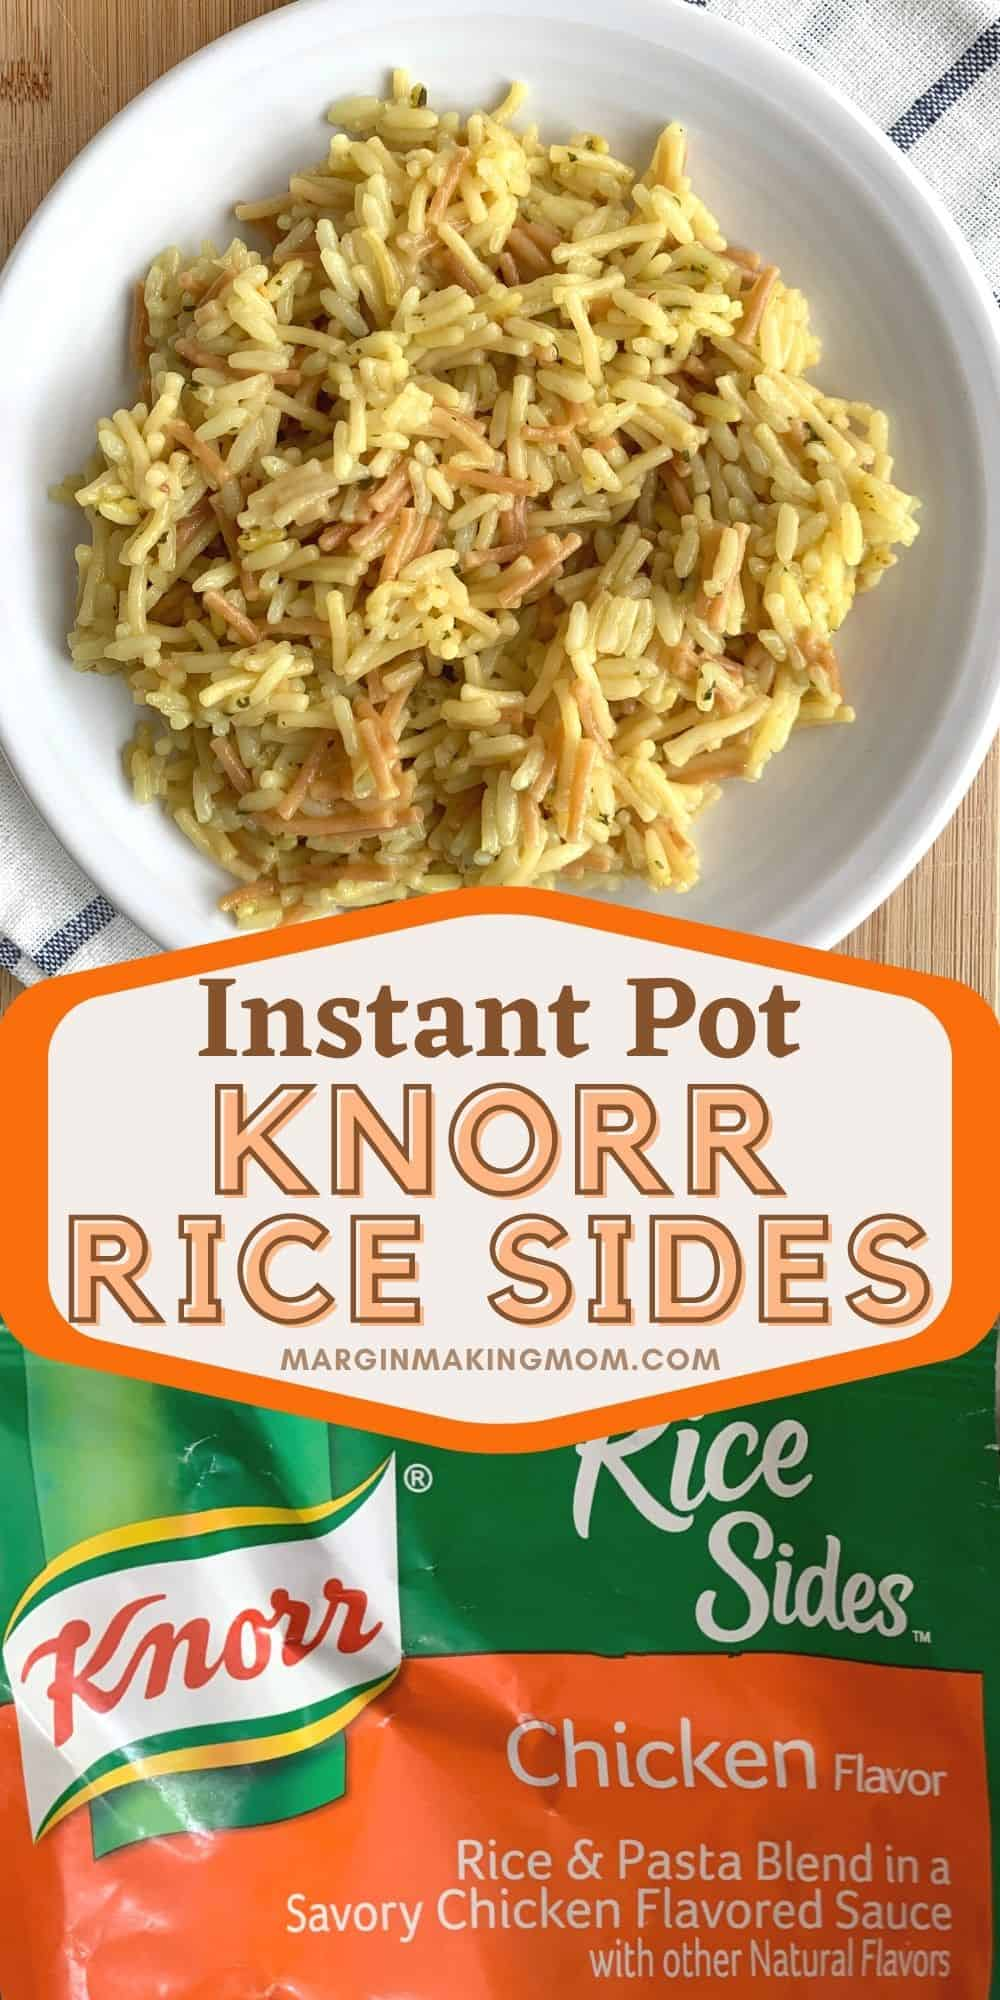 collage image featuring two photos. One photo shows a package of Knorr Rice Sides and the other photo shows the finished product after cooking in the Instant Pot.